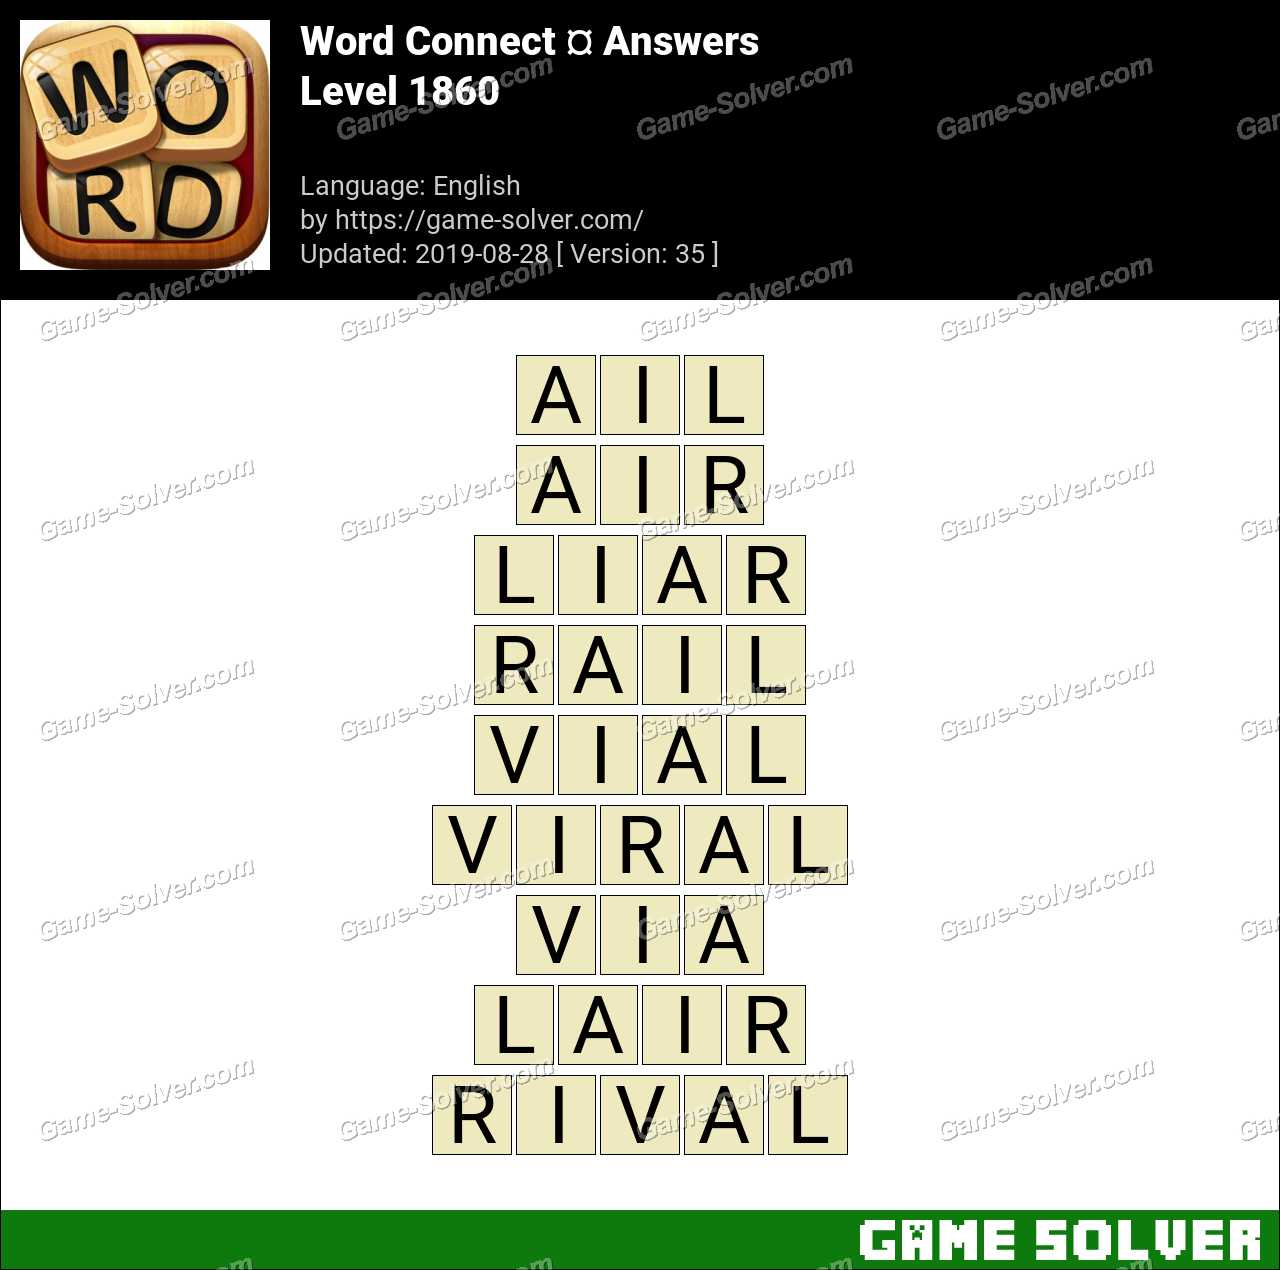 Word Connect Level 1860 Answers